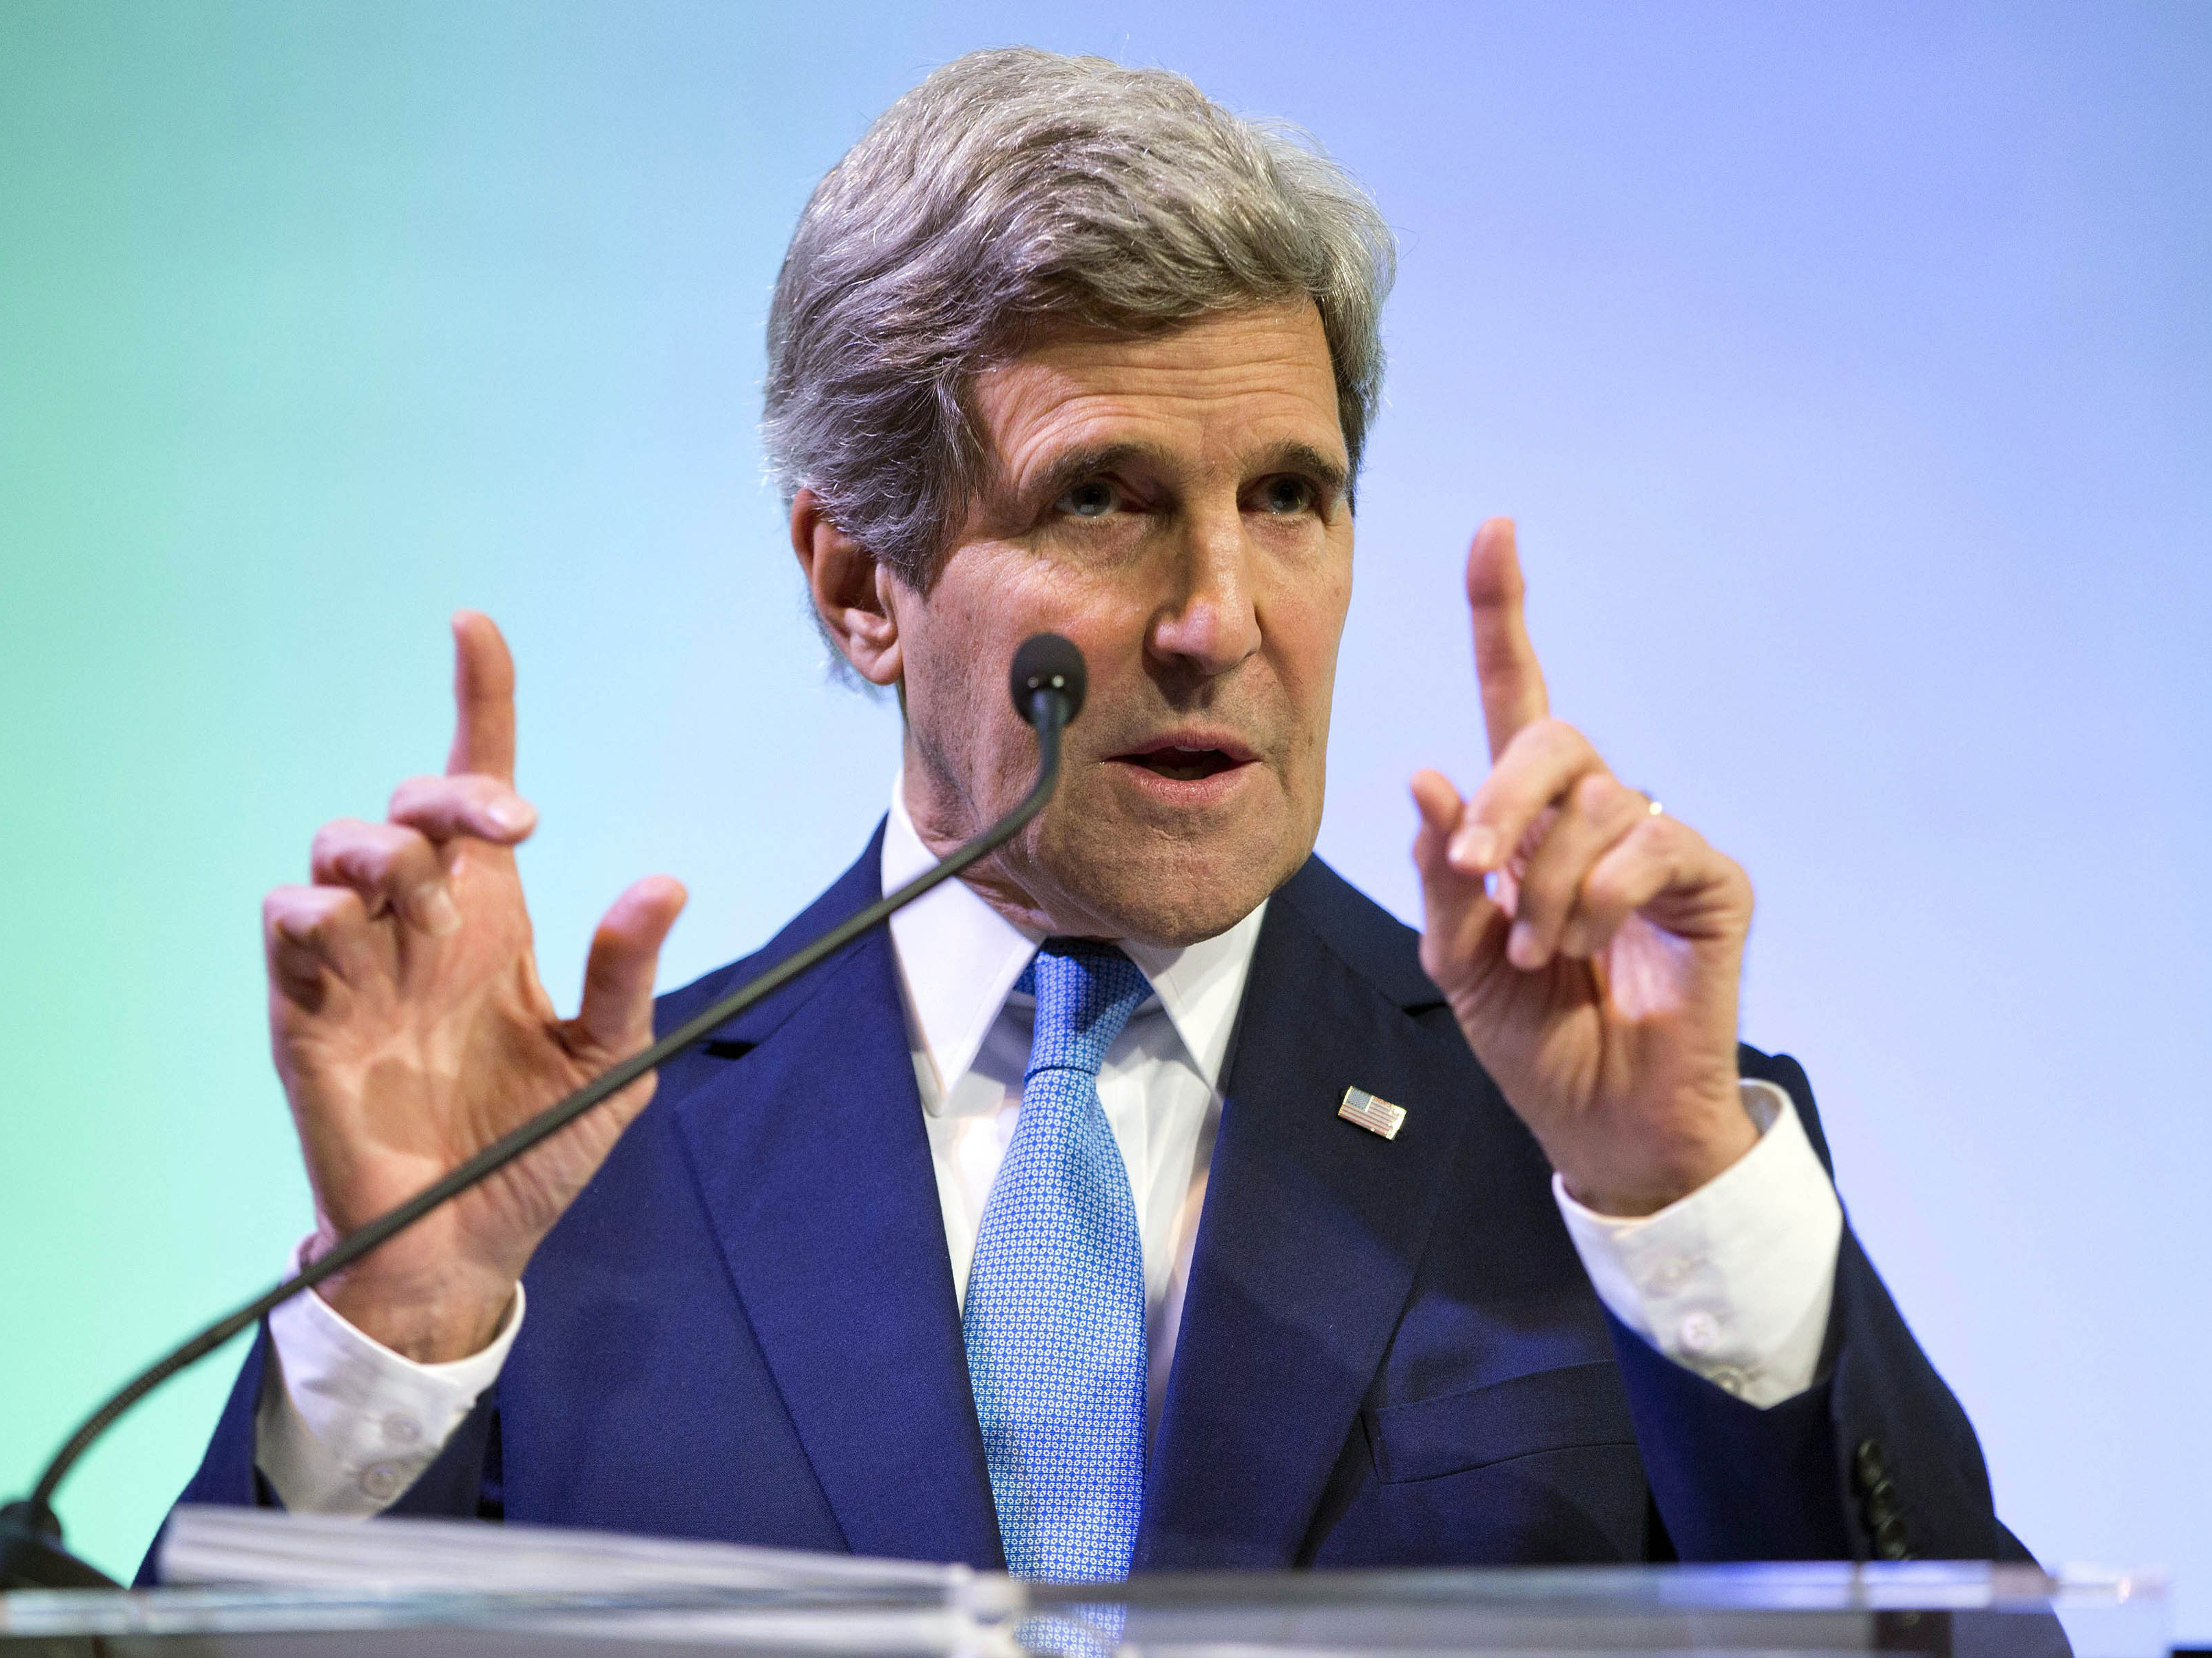 Kerry Warns Indonesia: Climate Change Threatens 'Entire Way Of Life'